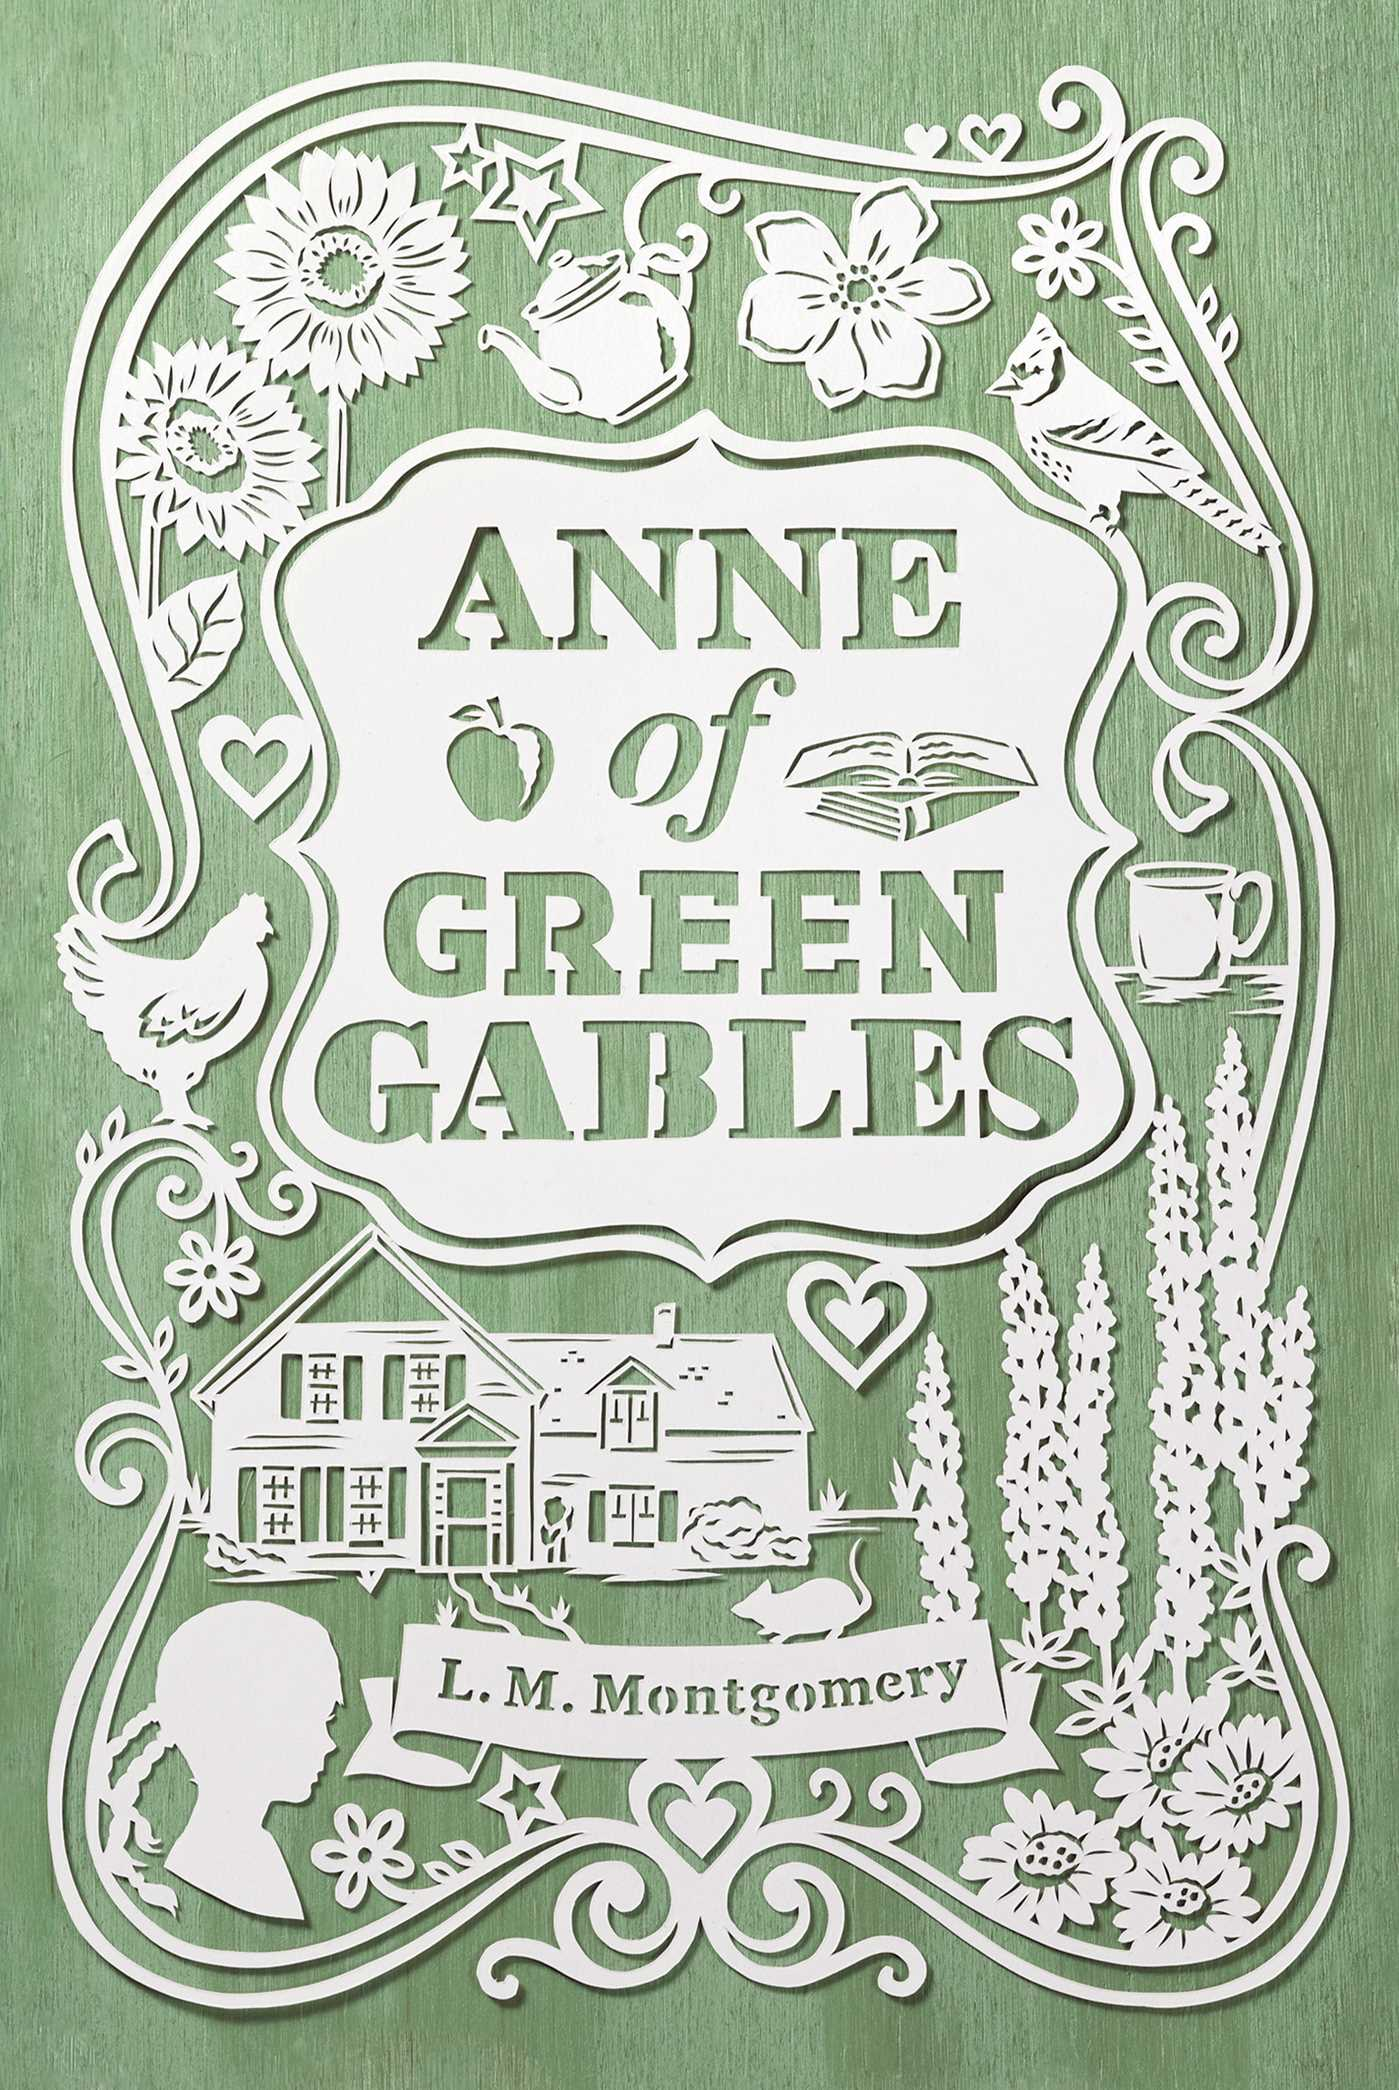 Anne-of-green-gables-9781442457997_hr